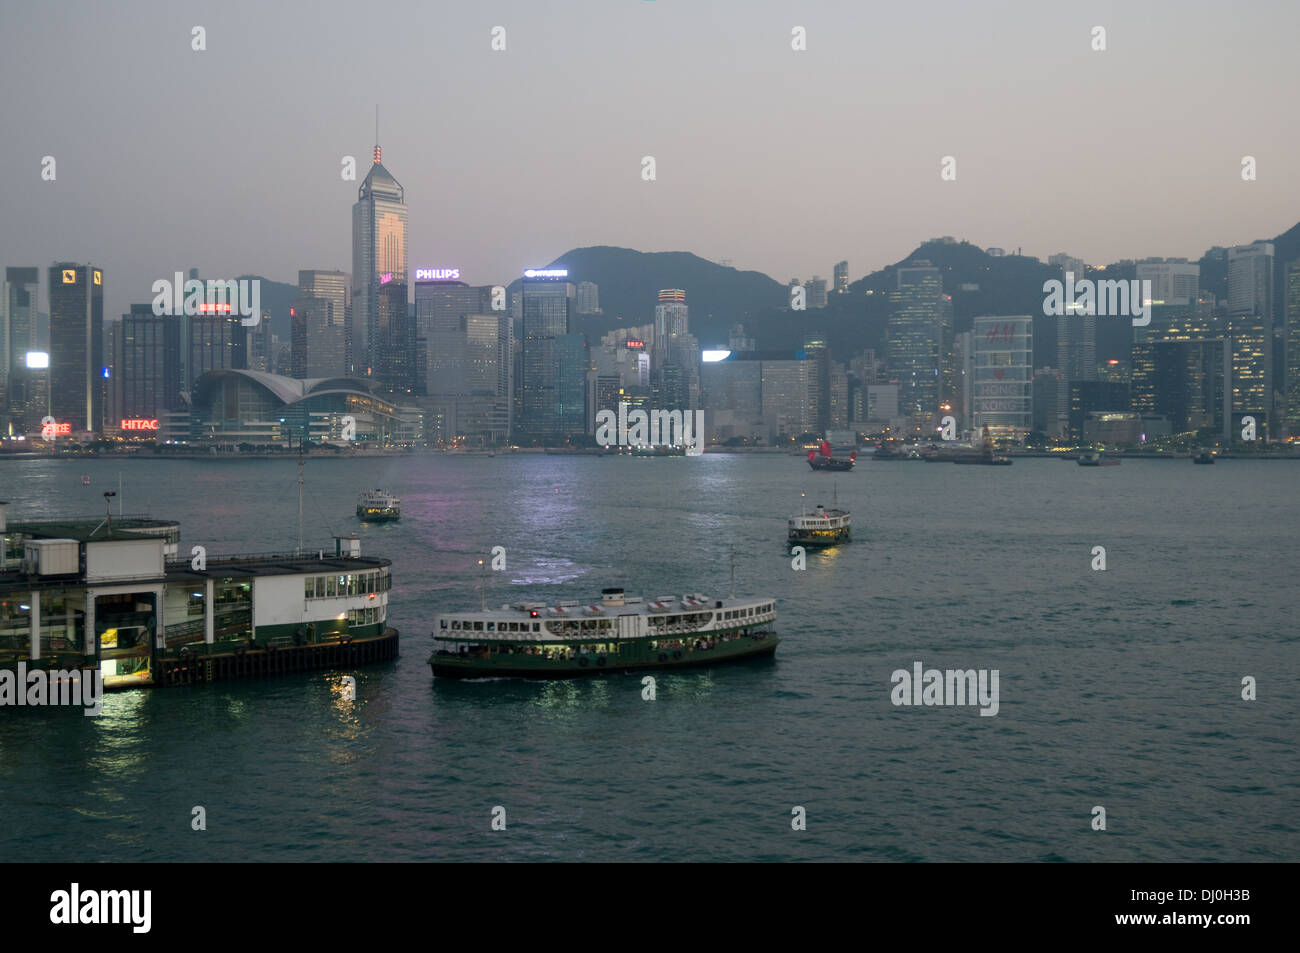 Star ferries come and go from the pier at Tsim Sha Tsui, Kowloon, Hong Kong S.A.R. Hong Island skyline in the background Stock Photo